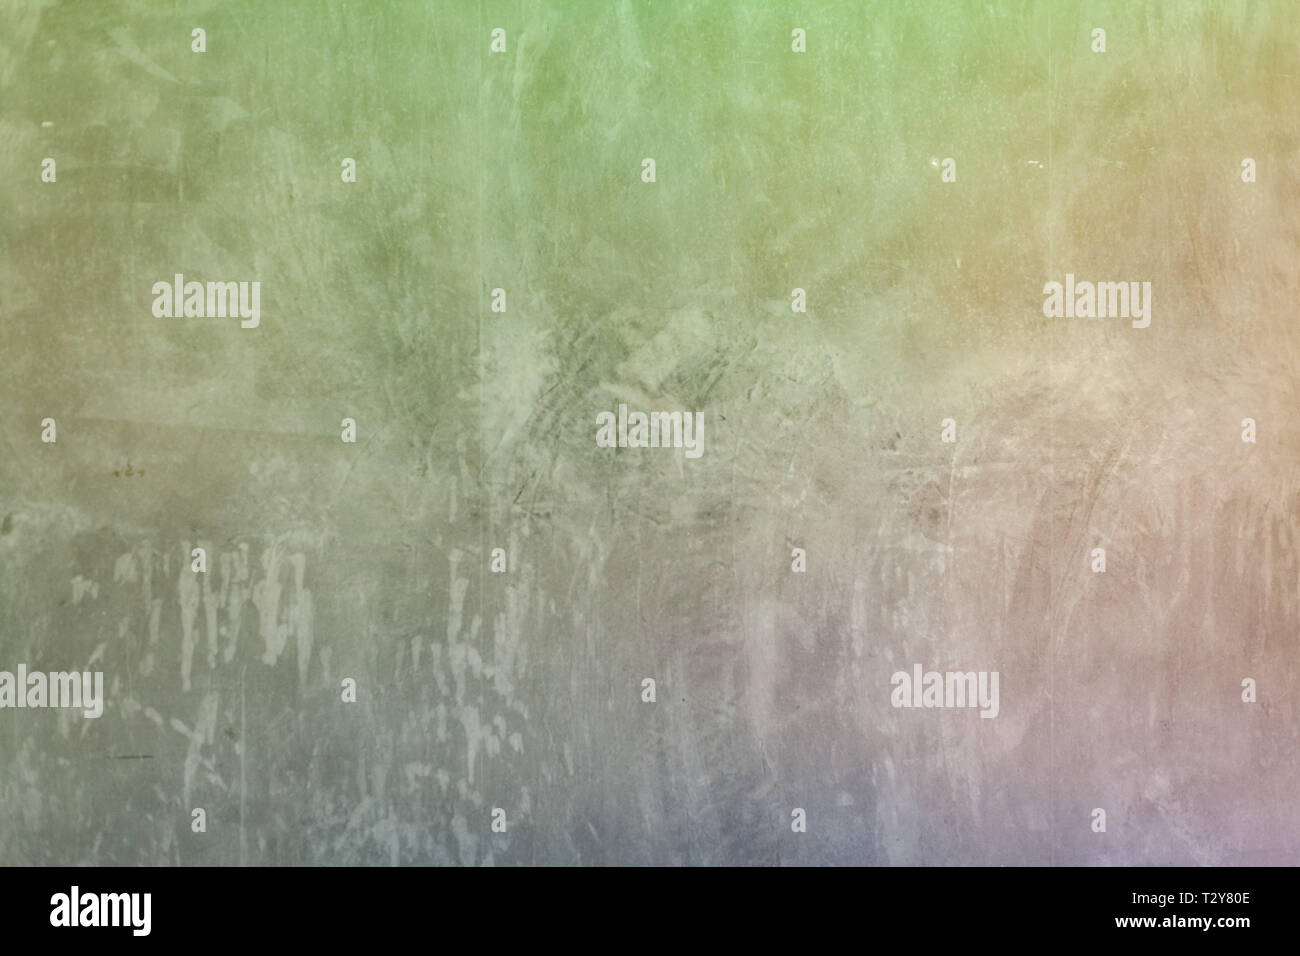 Concrete paint background texture overlay - Stock Image